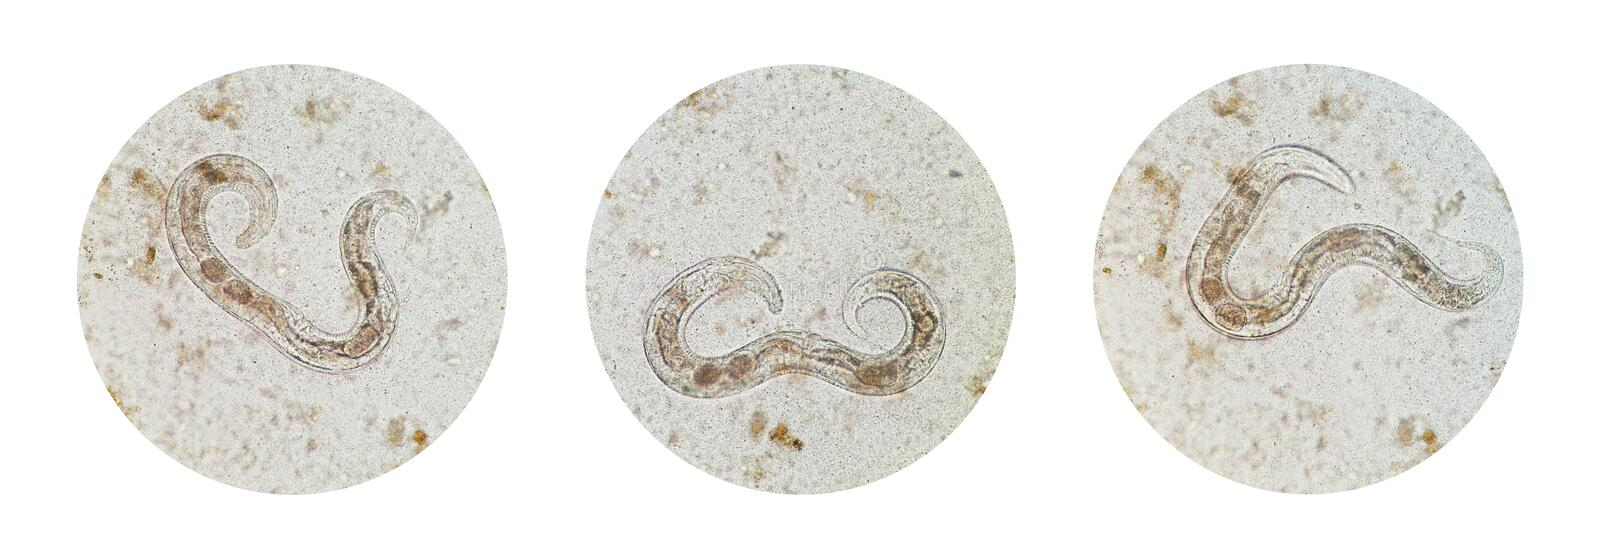 Microscopic view collection of adult free-living female Strongyloides stercoralis, a human pathogenic parasitic roundworm causing stock images